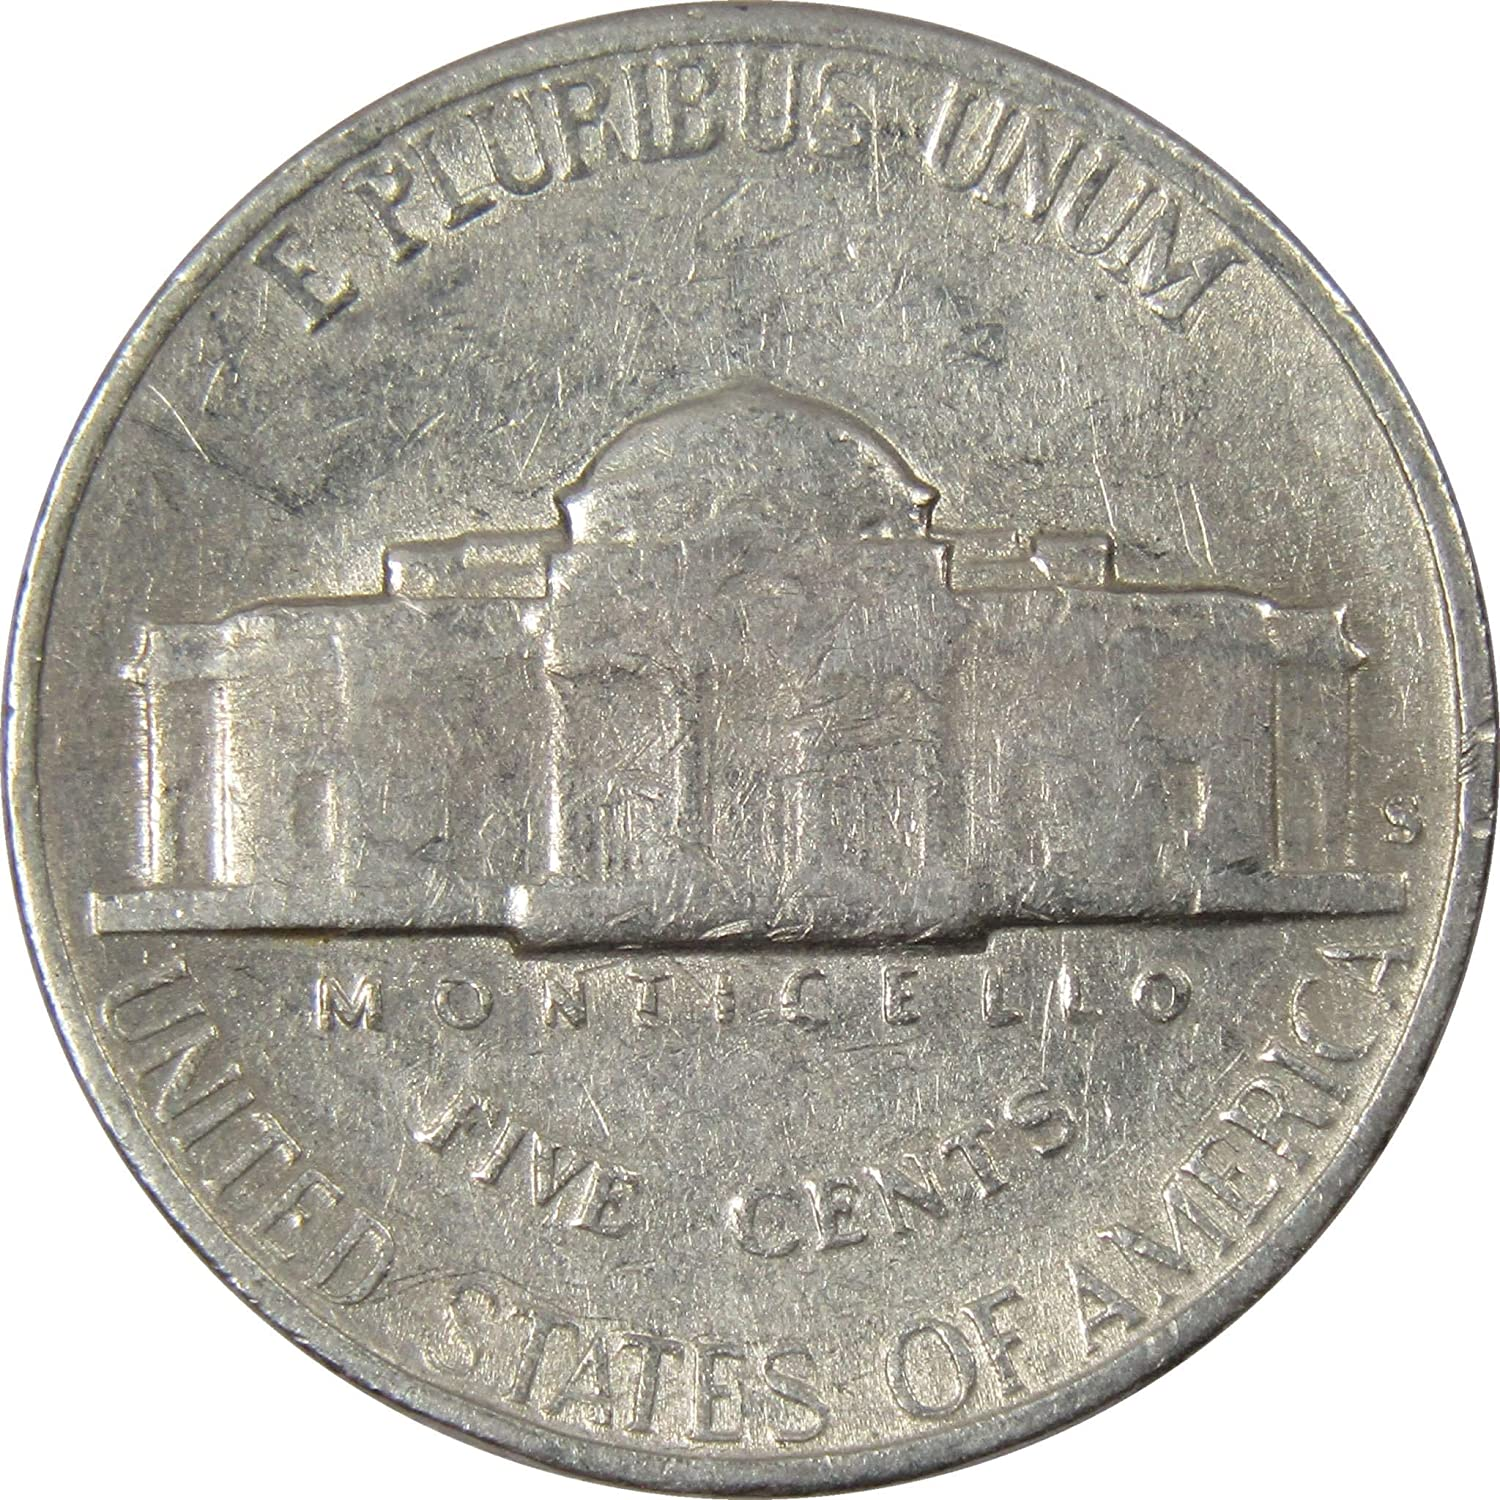 1949 S 5c Jefferson Nickel US Coin BU Uncirculated Mint State